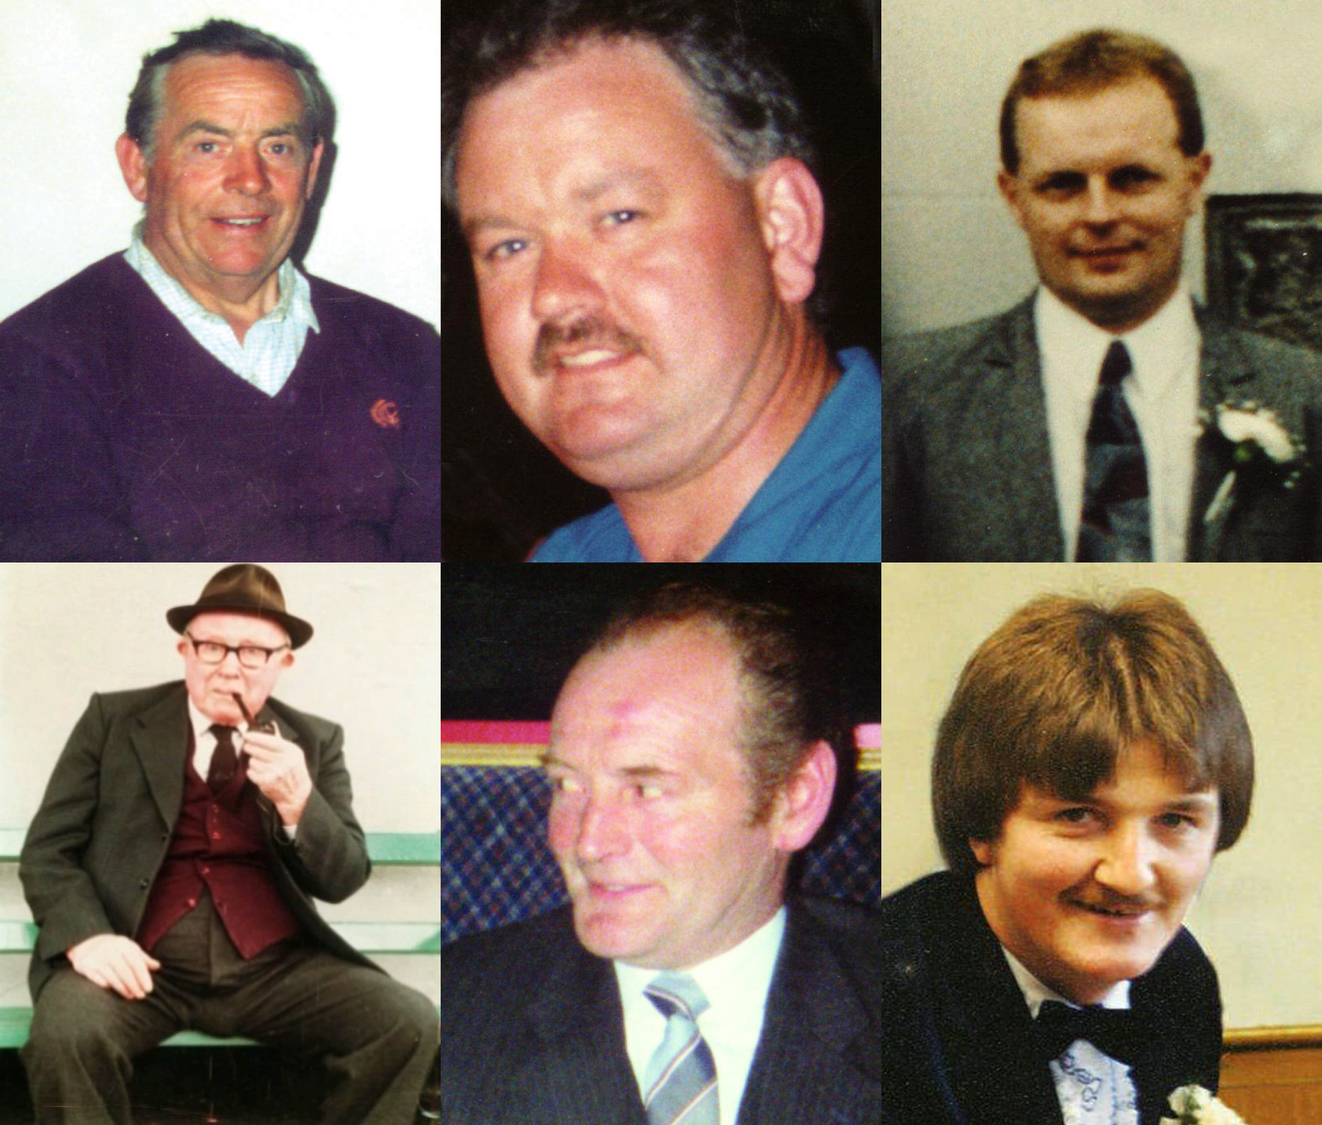 The six men killed in the Loughinisland massacre